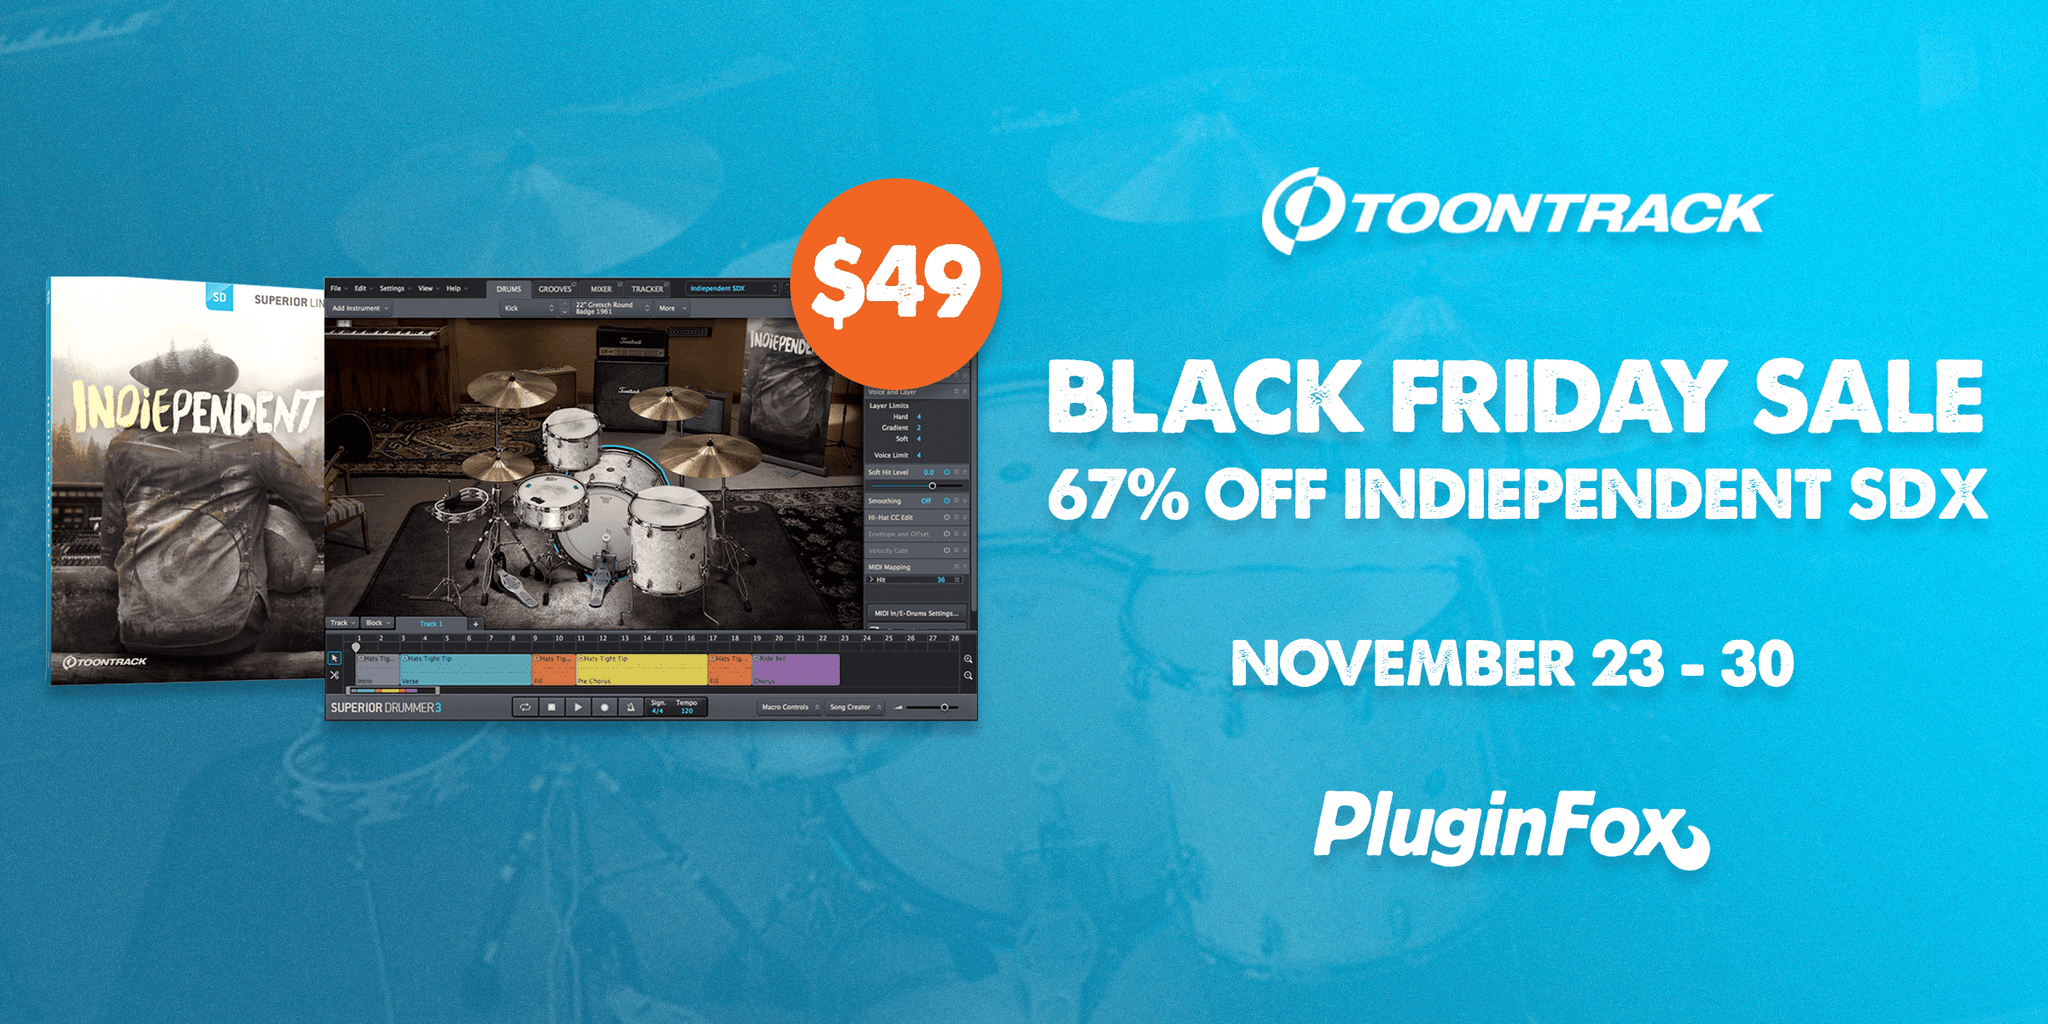 Toontrack Indiependent Flash Sale - Nov 23 -30